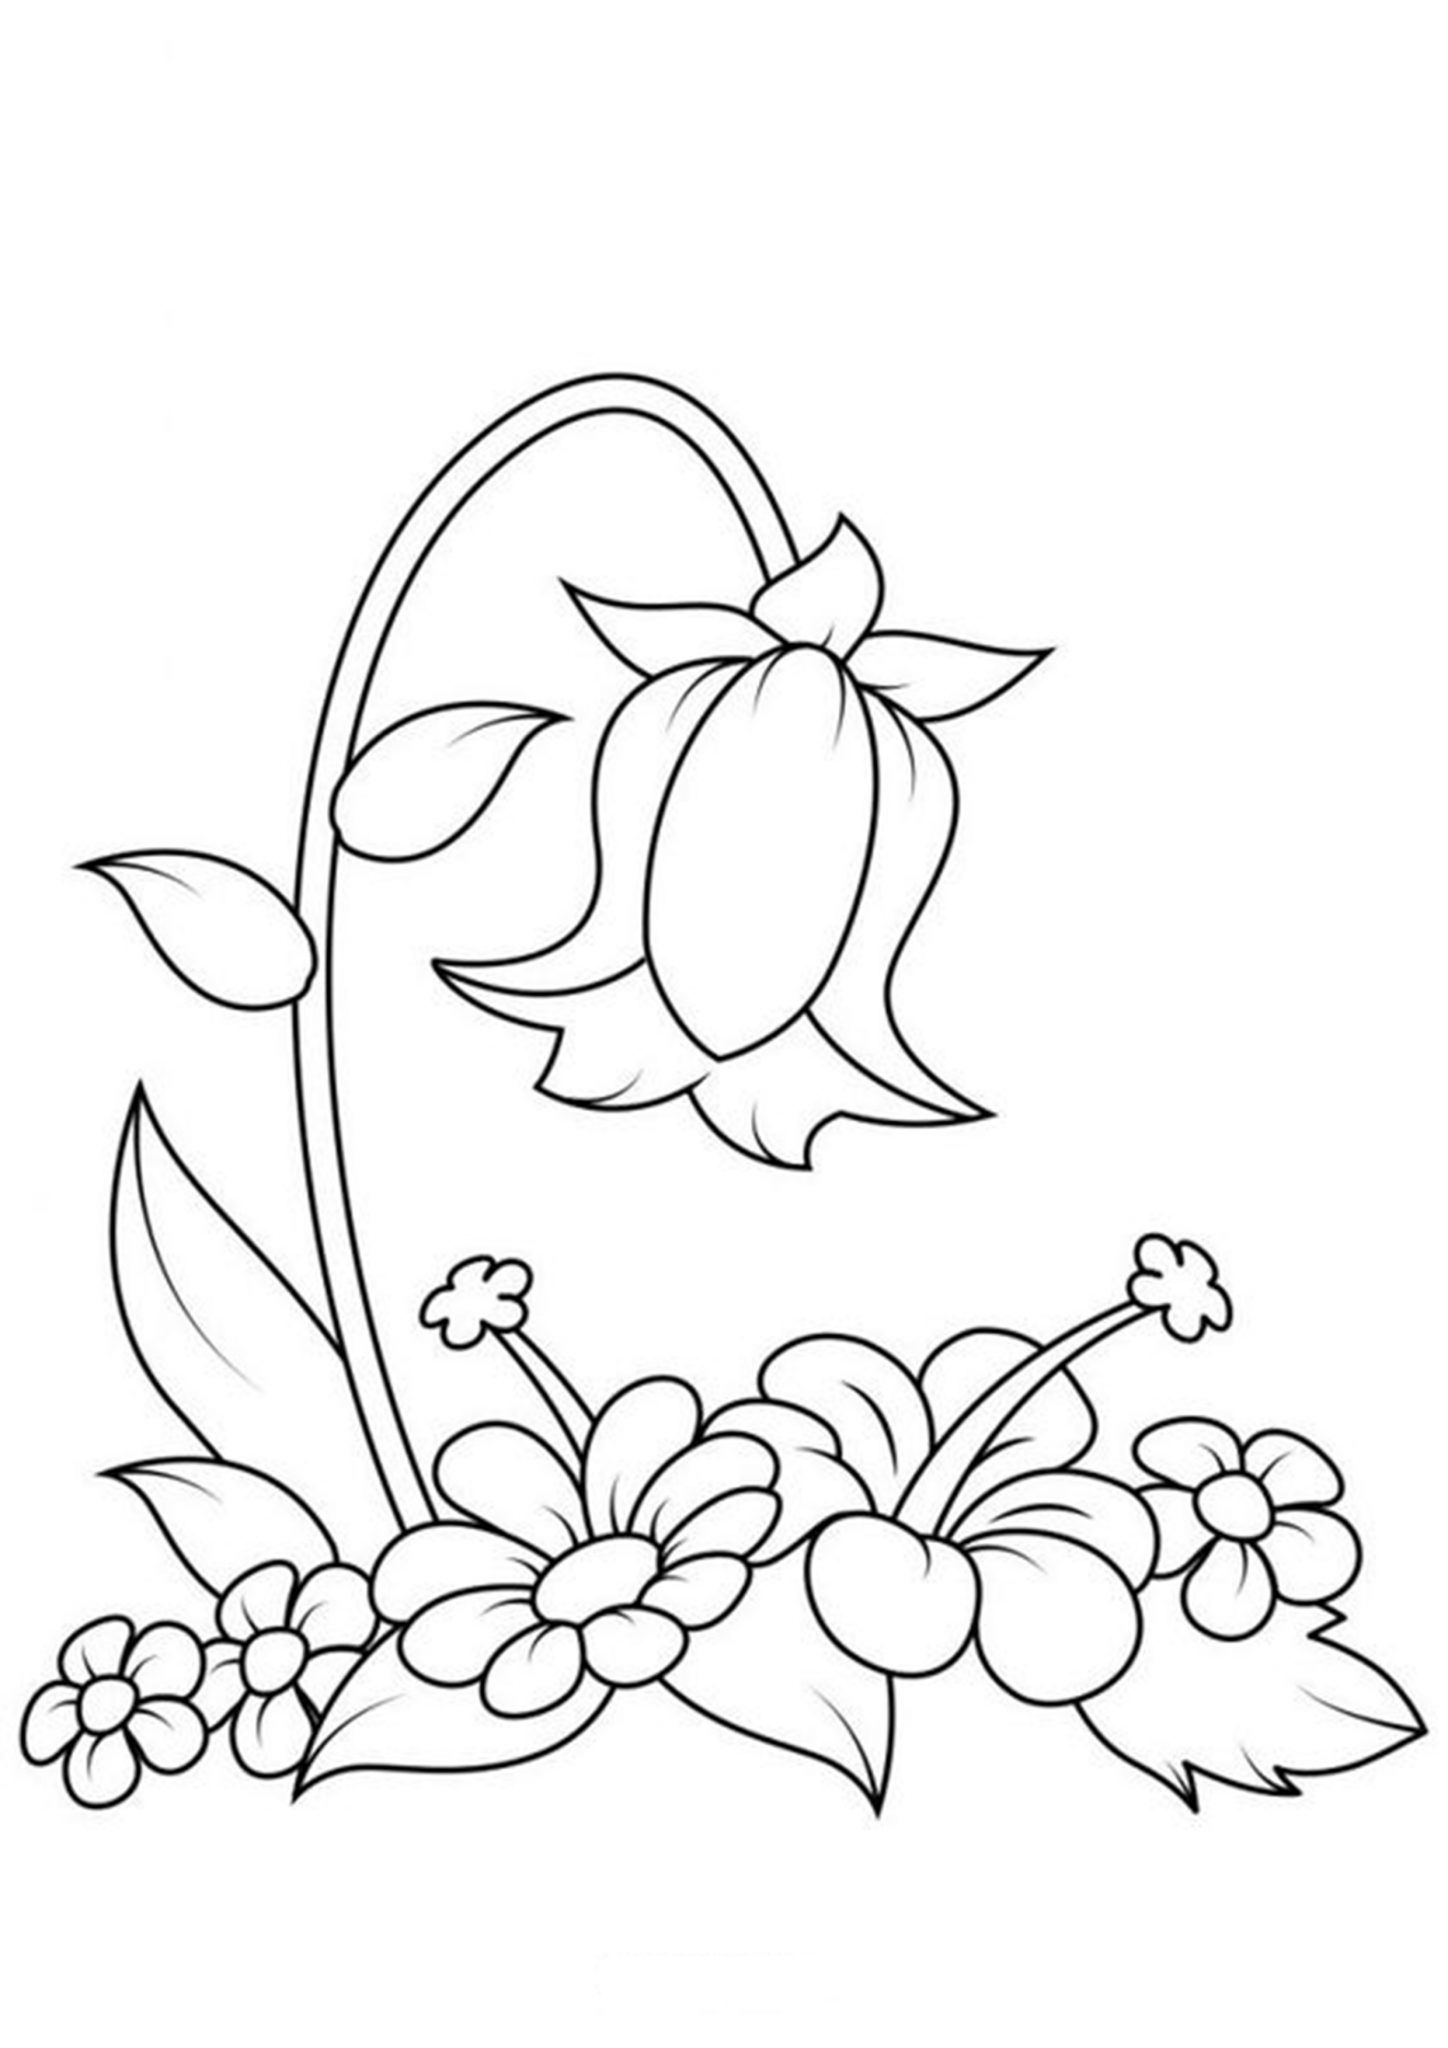 Big Island Paper Embroidery Tree Coloring Page Coloring Pages